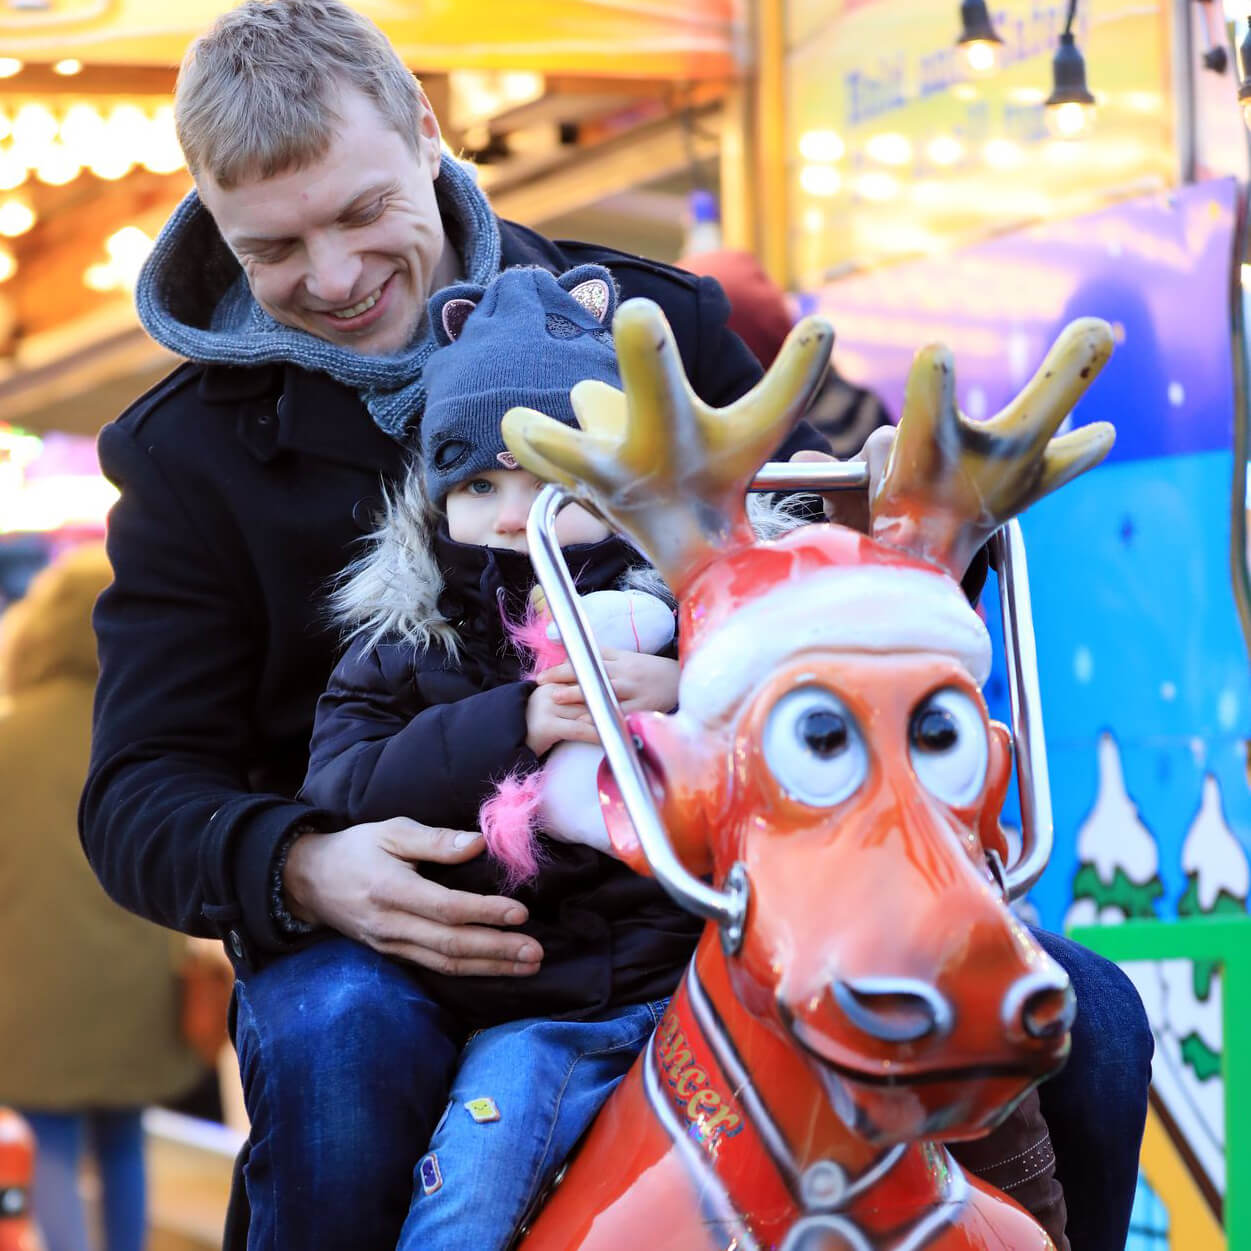 Family fun on our new Reindeer Ride!